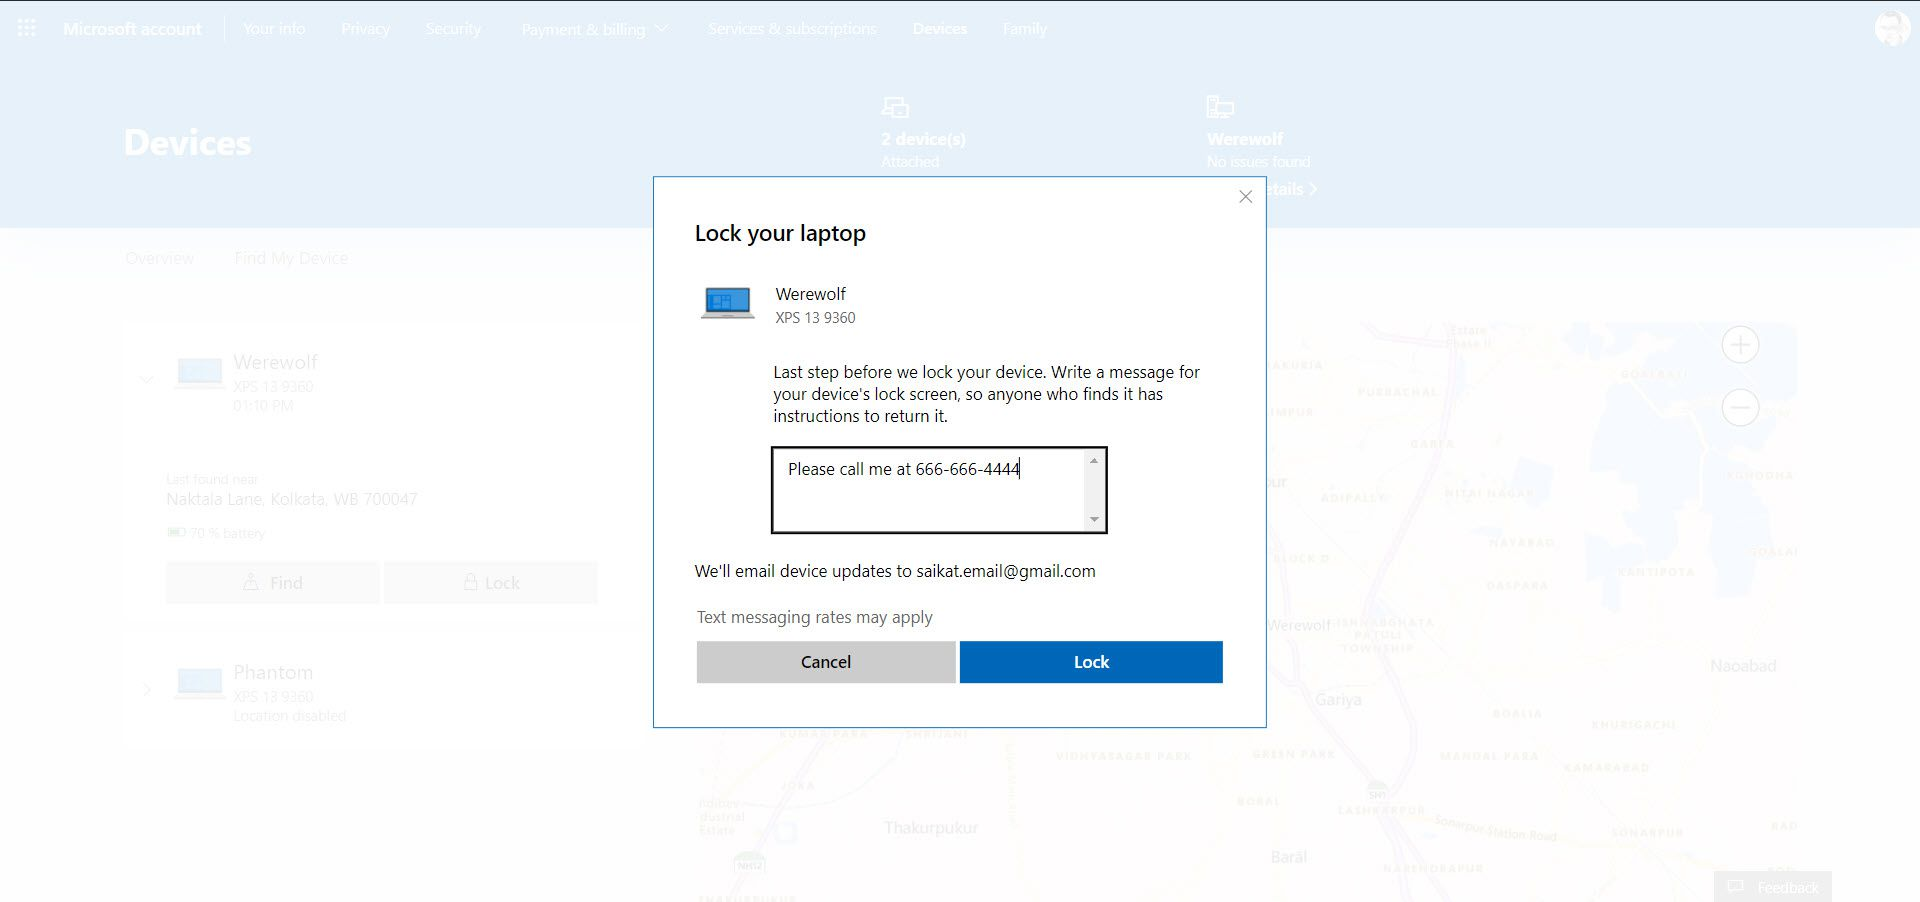 Dell laptop lock message on screen